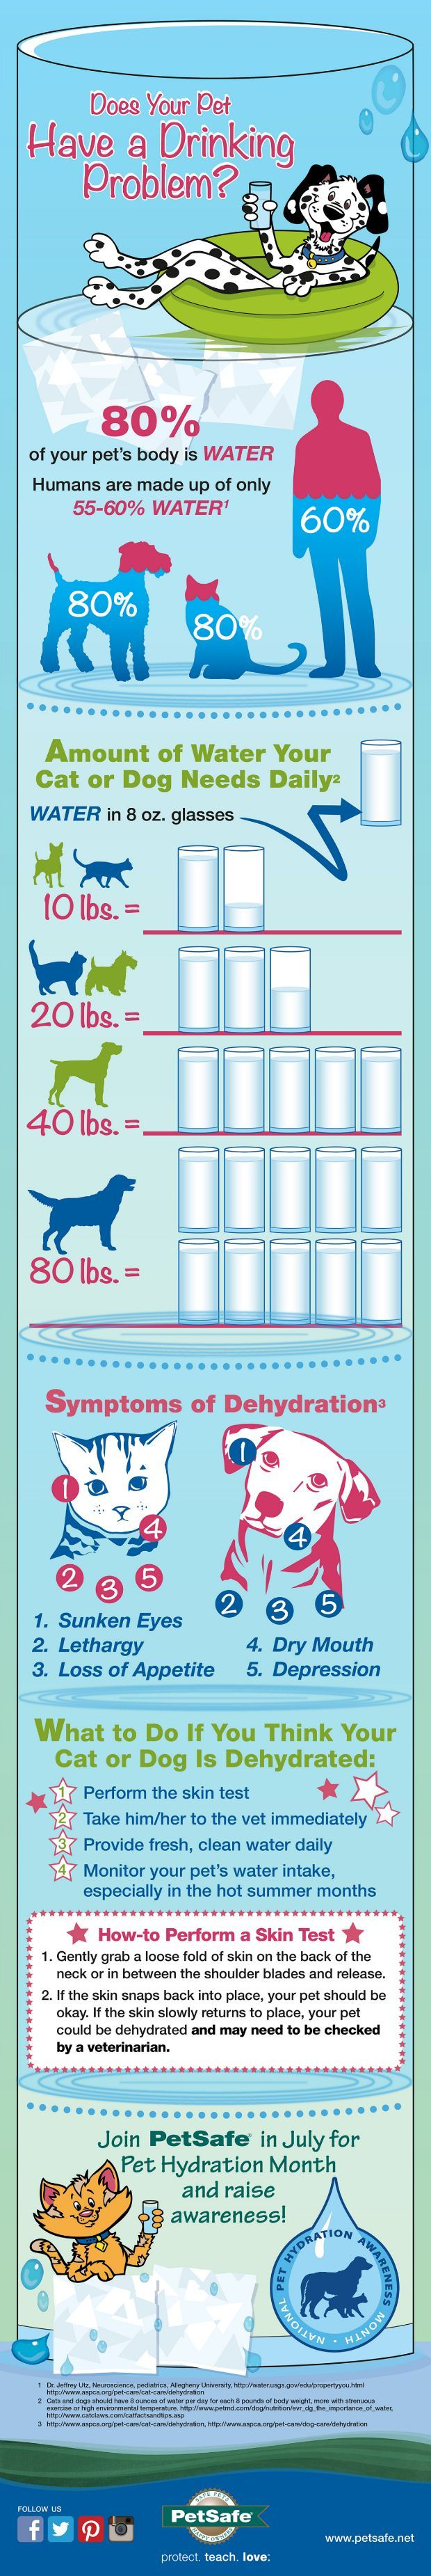 Keeping Pets Hydrated In The Summer Heat Pets, Dogs